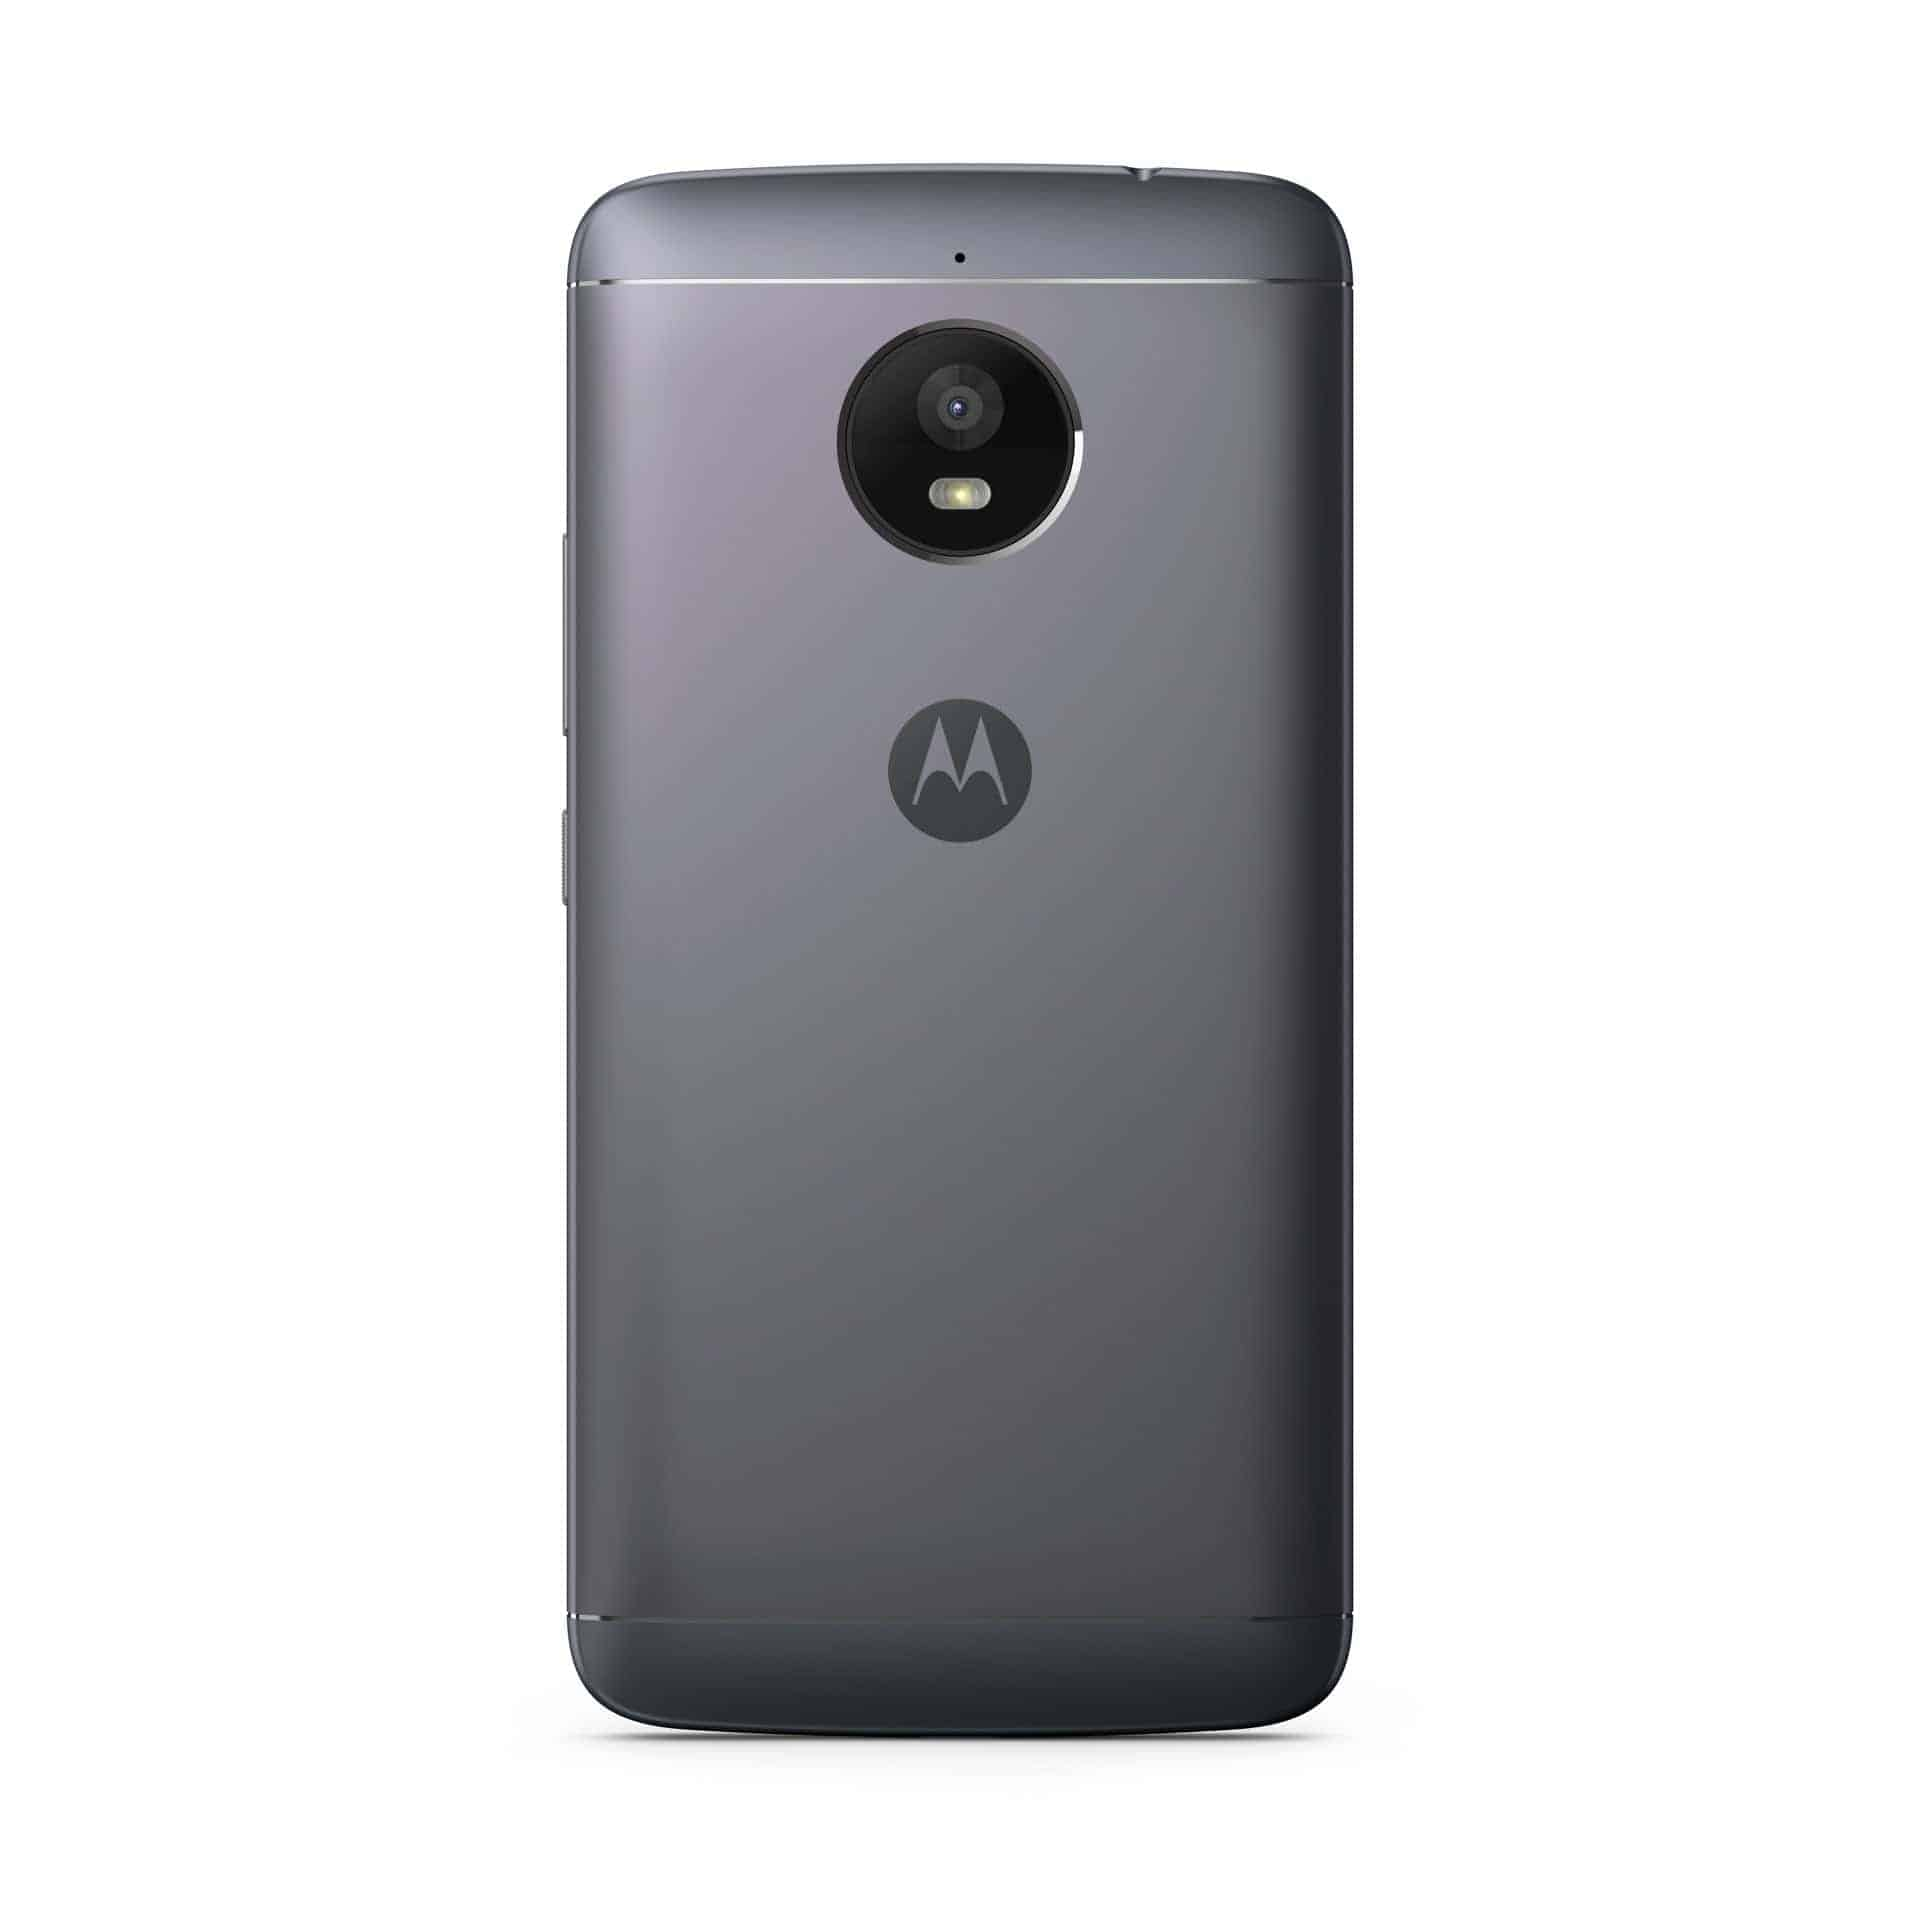 moto e4 moto e4 plus are official starting at 130 180 android news. Black Bedroom Furniture Sets. Home Design Ideas